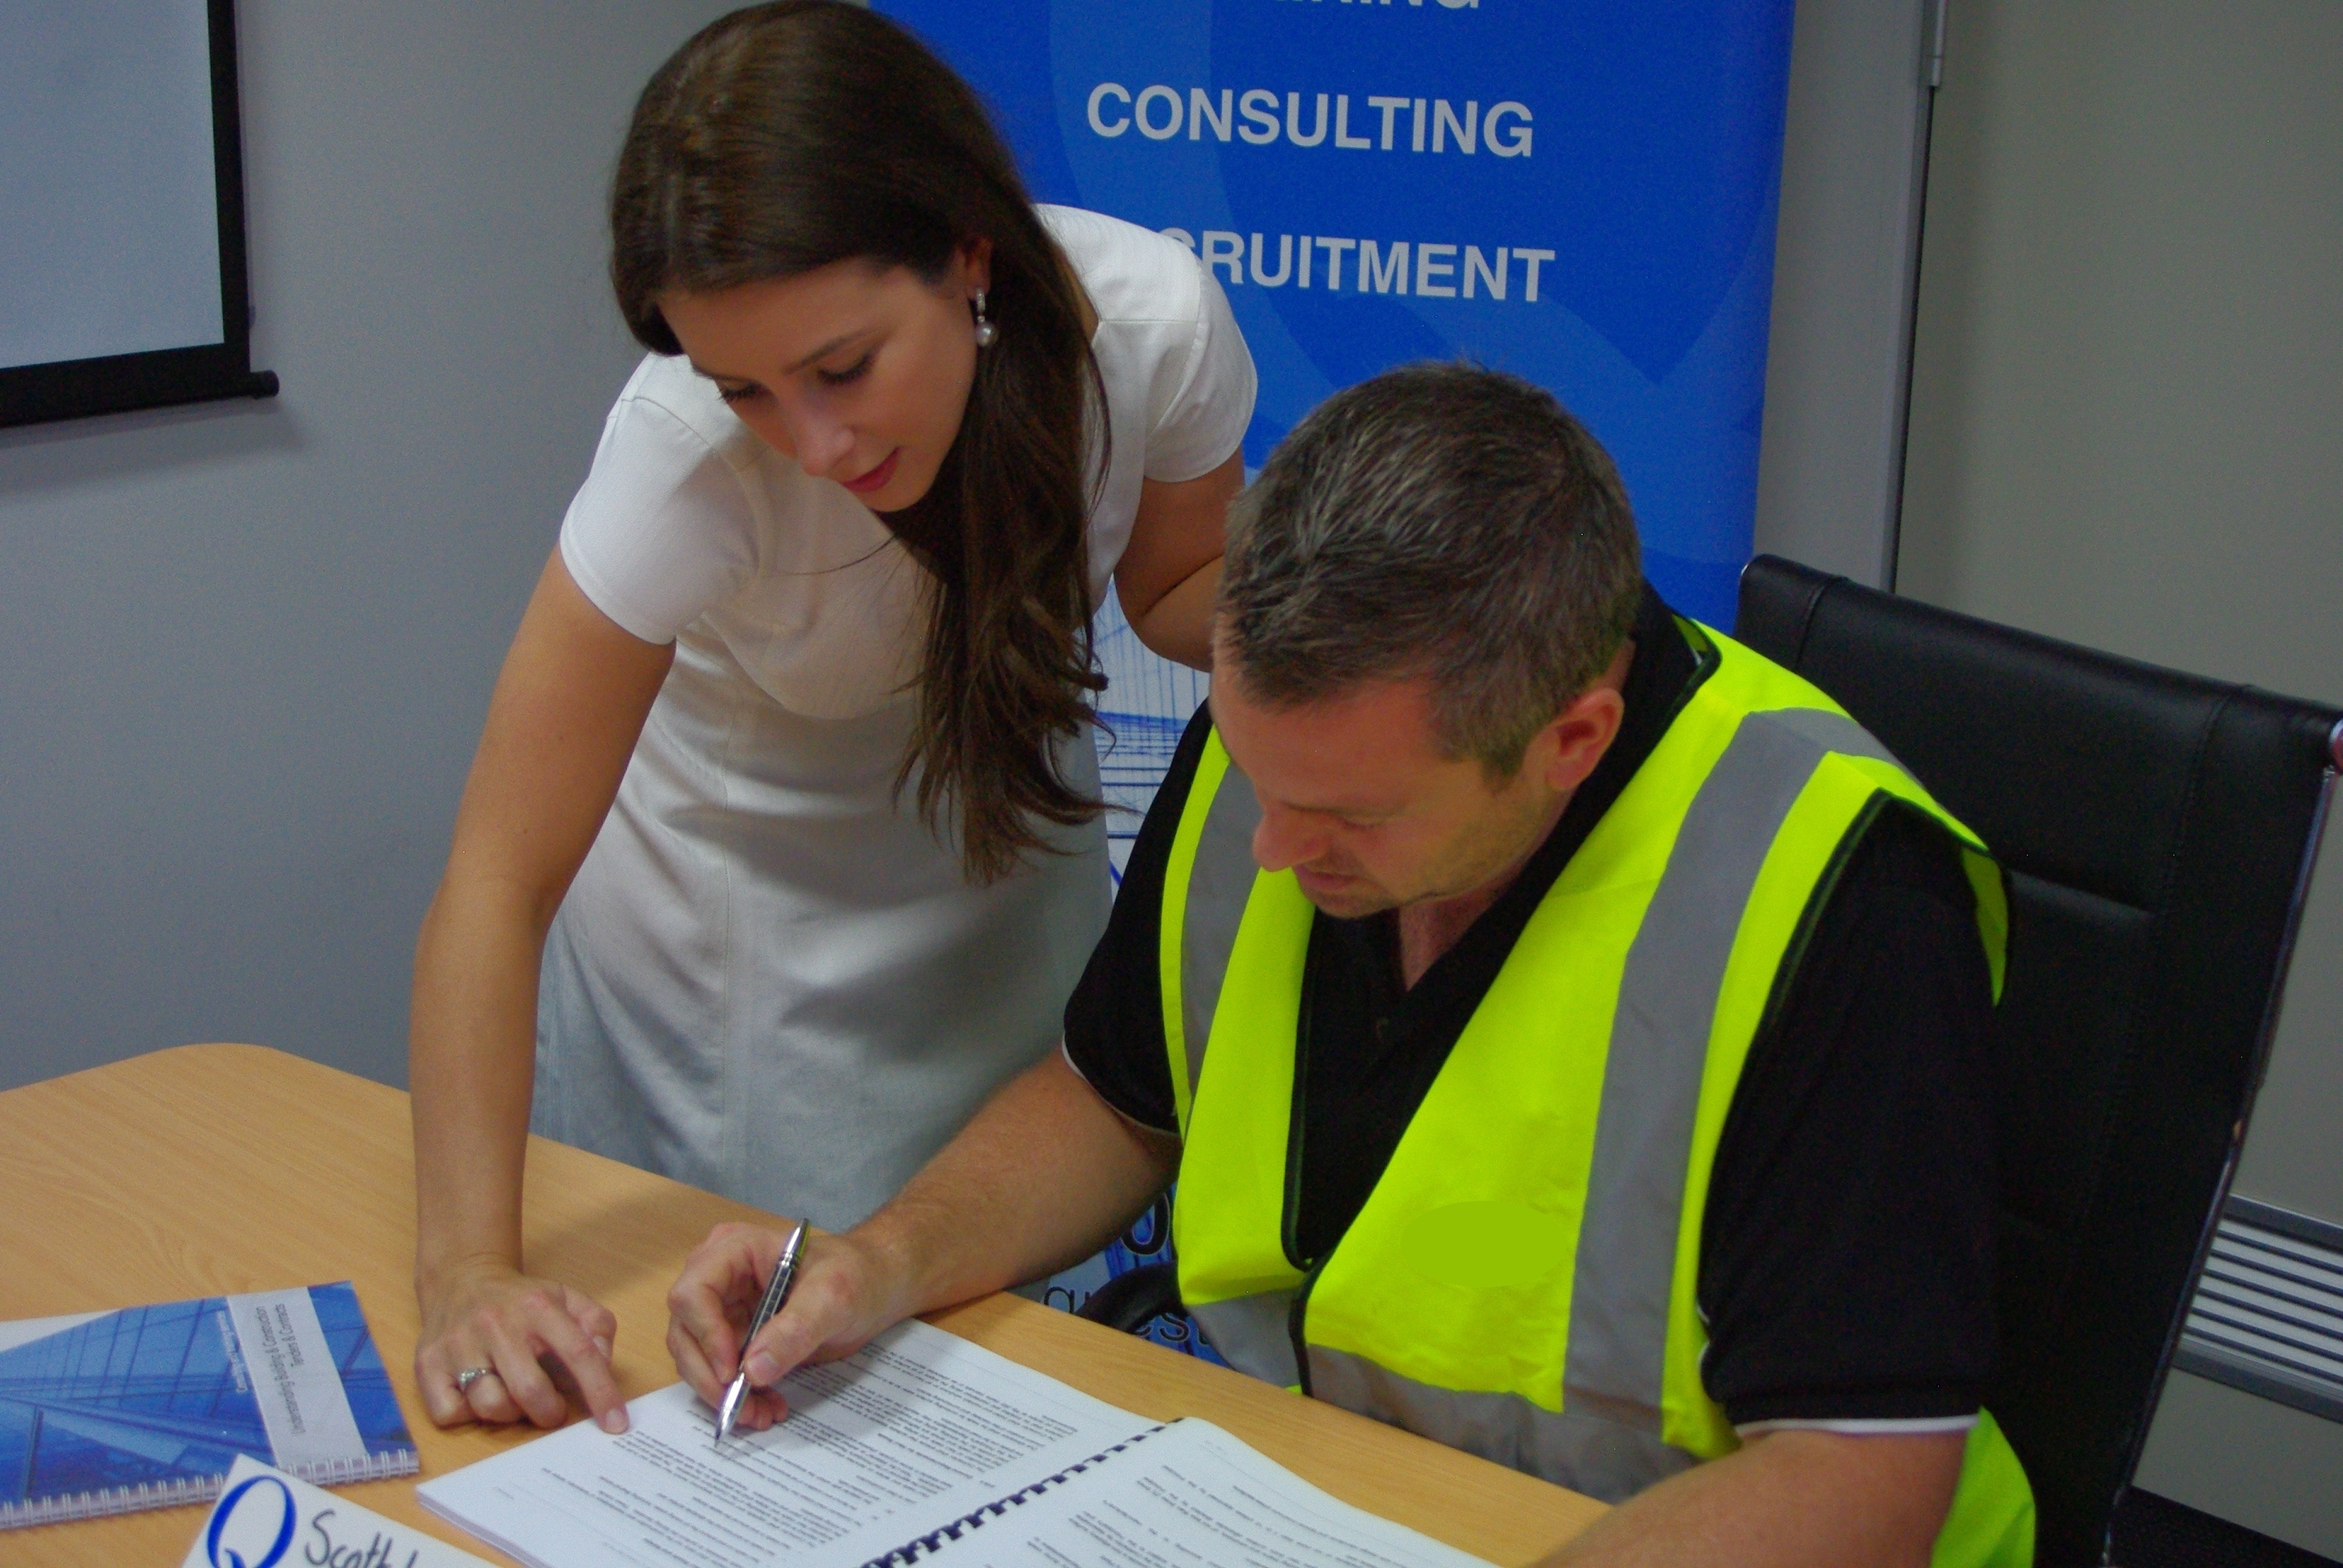 Contract and Tender Consulting Services